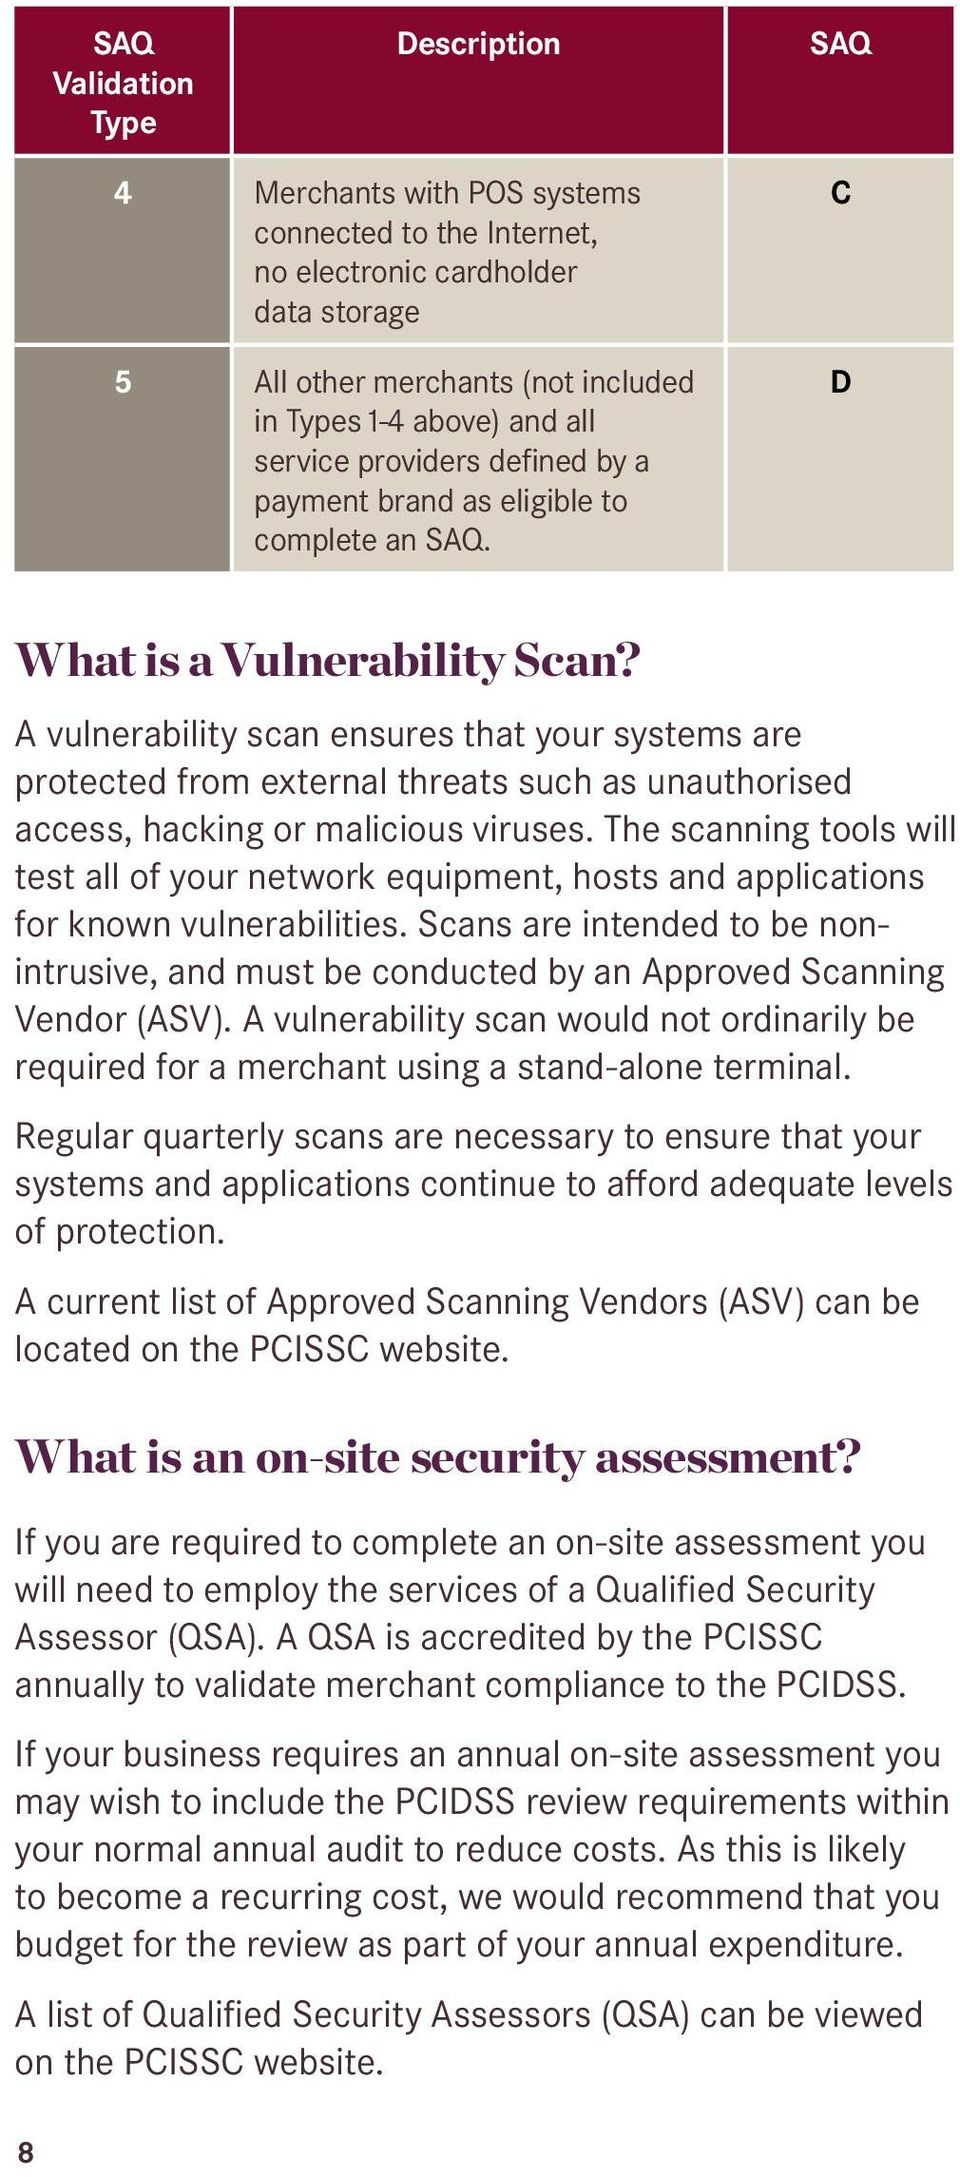 A vulnerability scan ensures that your systems are protected from external threats such as unauthorised access, hacking or malicious viruses.